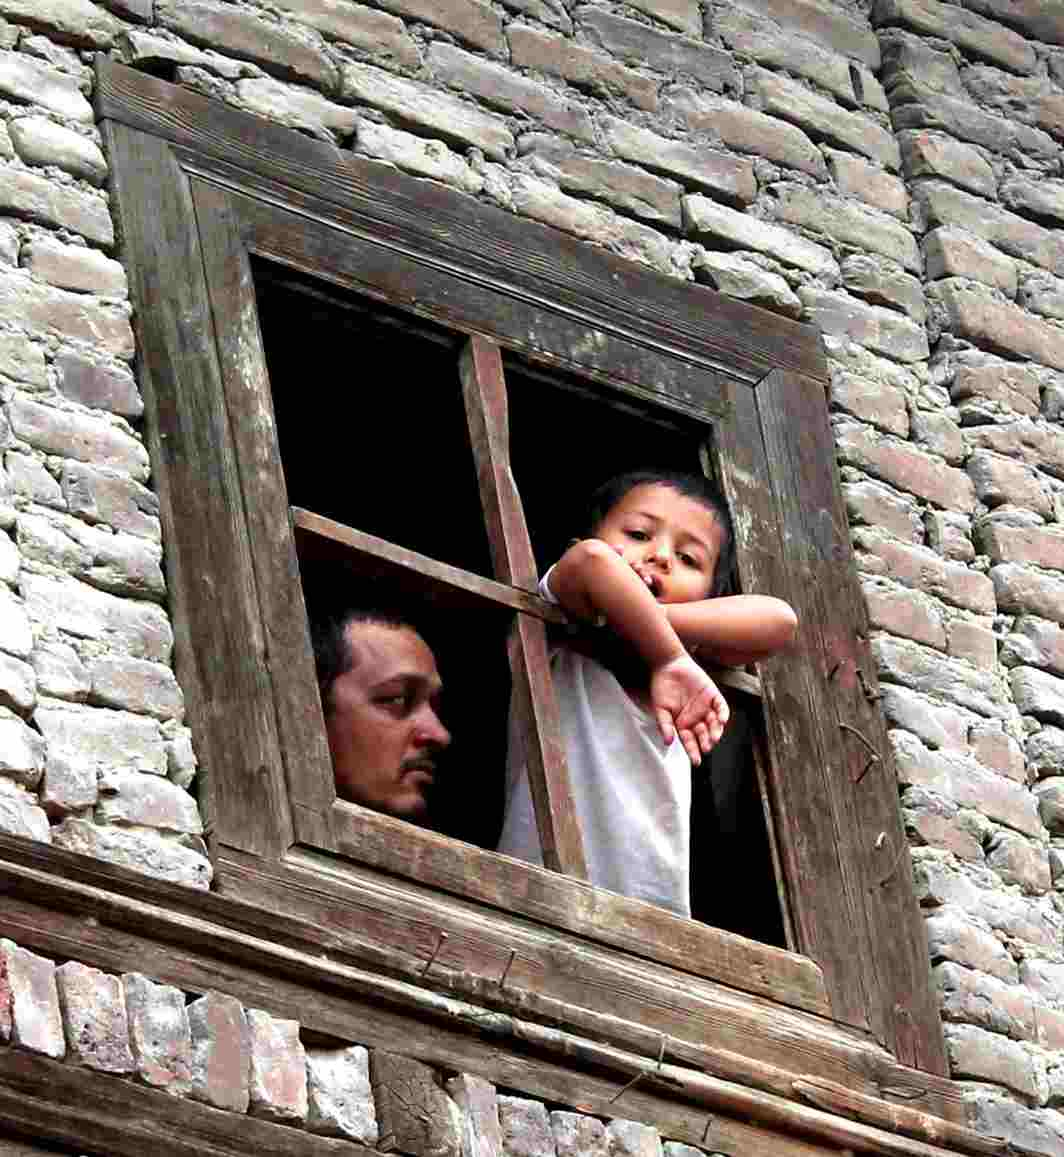 NO GOING OUT: A child peeping through a window Nawab Bazar where curfew was imposed along with Shar-e-Khas in down town Srinagar as a precautionary measure to prevent any violence as one of the three Hizbul Mujahideen militants killed in an encounter in the central Kashmir district of Badgam was a resident of Nowhatta, UNI